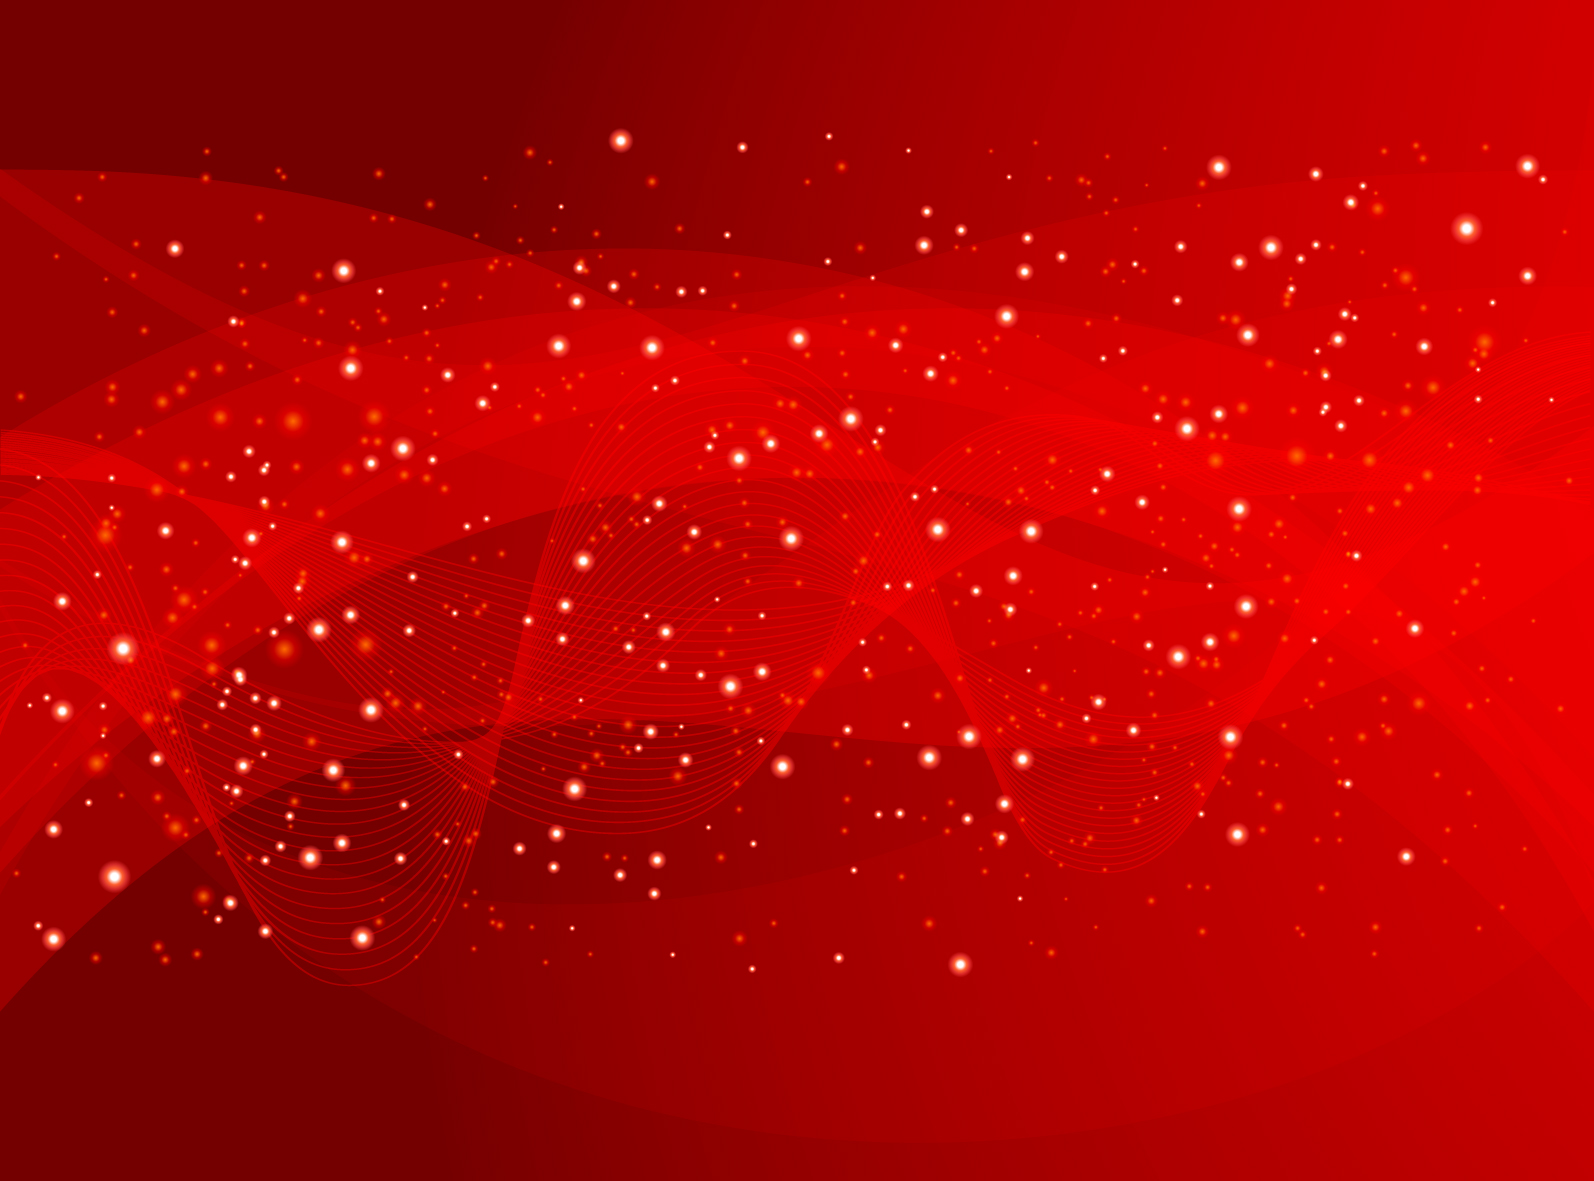 red wallpaper background clipart